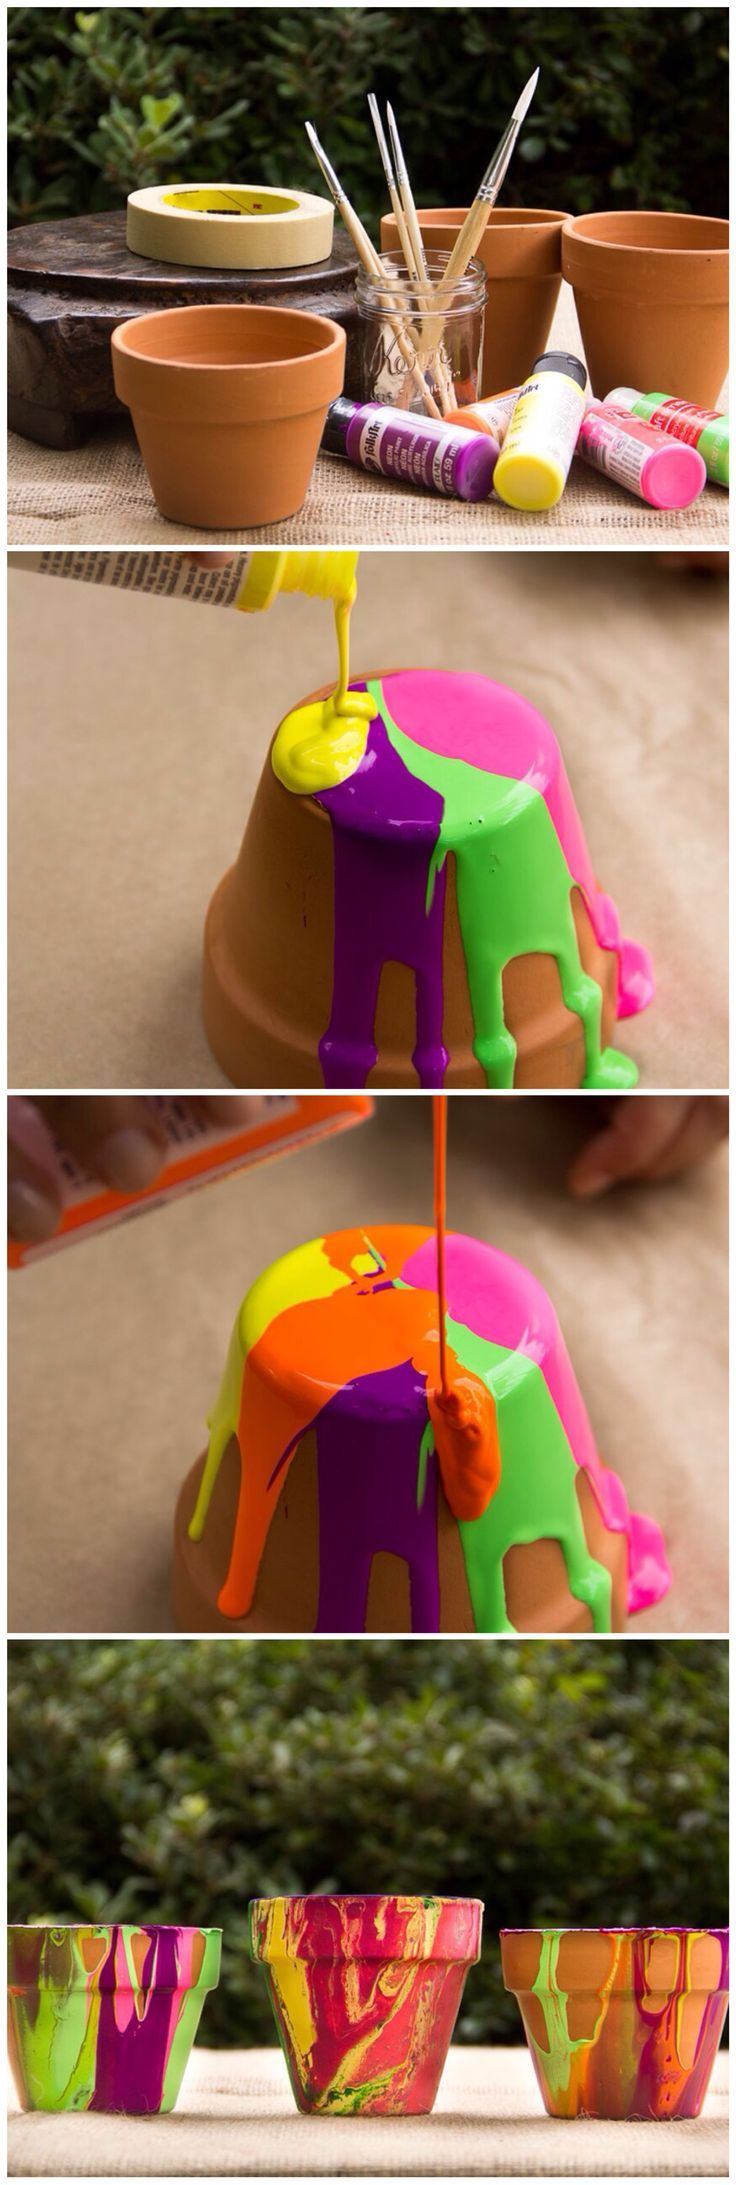 Poured Painted Pots by moonfrye.com Moonfrye DIY/ Paint Crafts/ Kids Crafts/ Kids Art Projects #Summer, #DIY, Summer Crafts